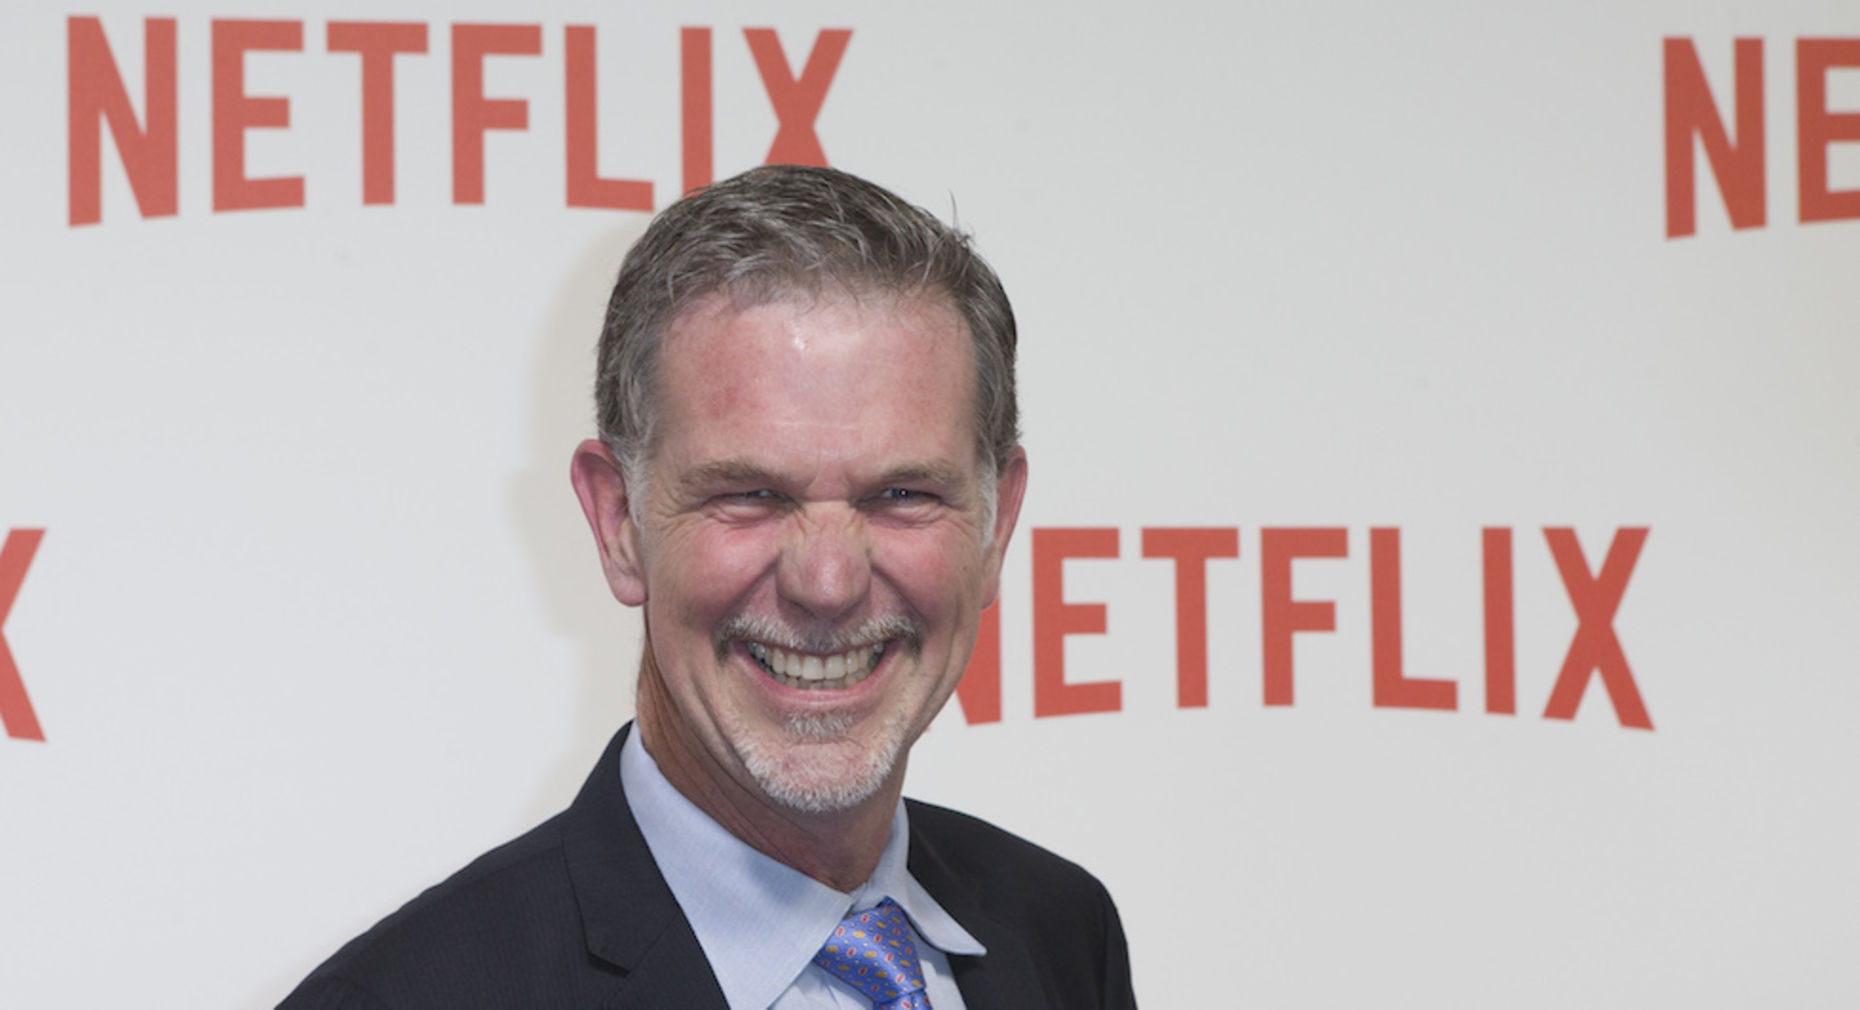 Netflix CEO Reed Hastings. Photo by Associated Press.